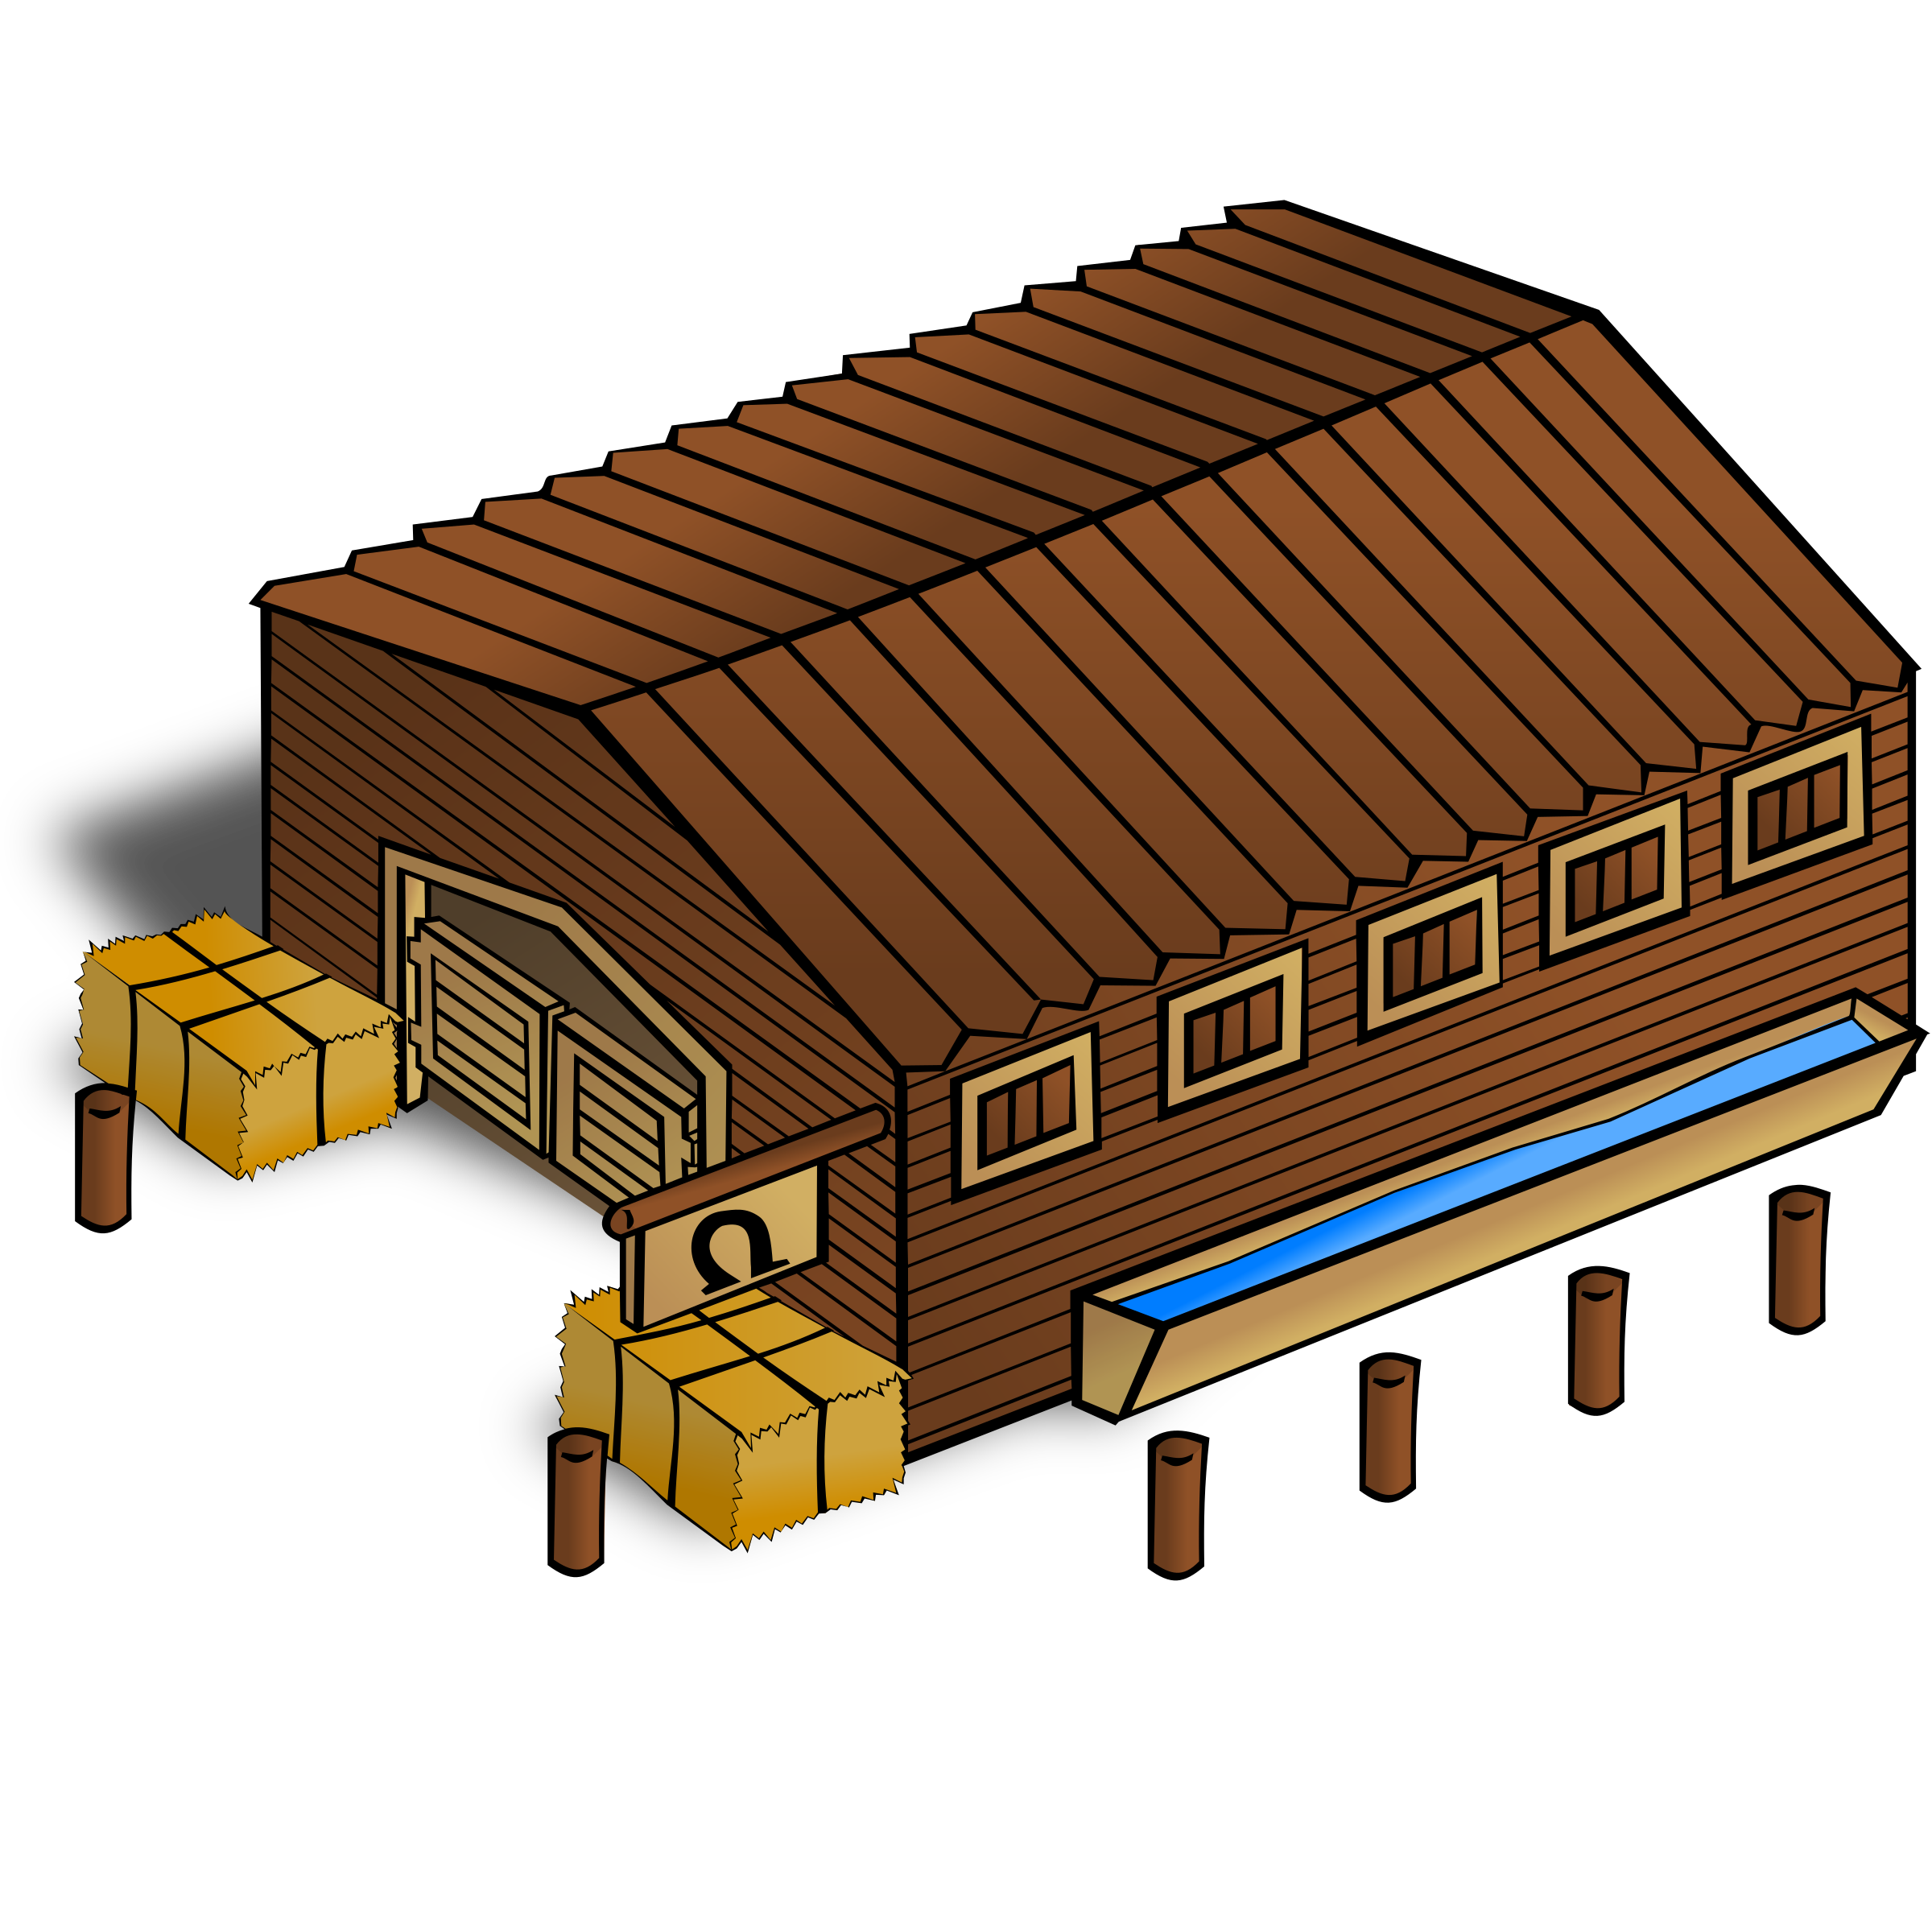 Horses clipart stable. Rpg map symbols stables